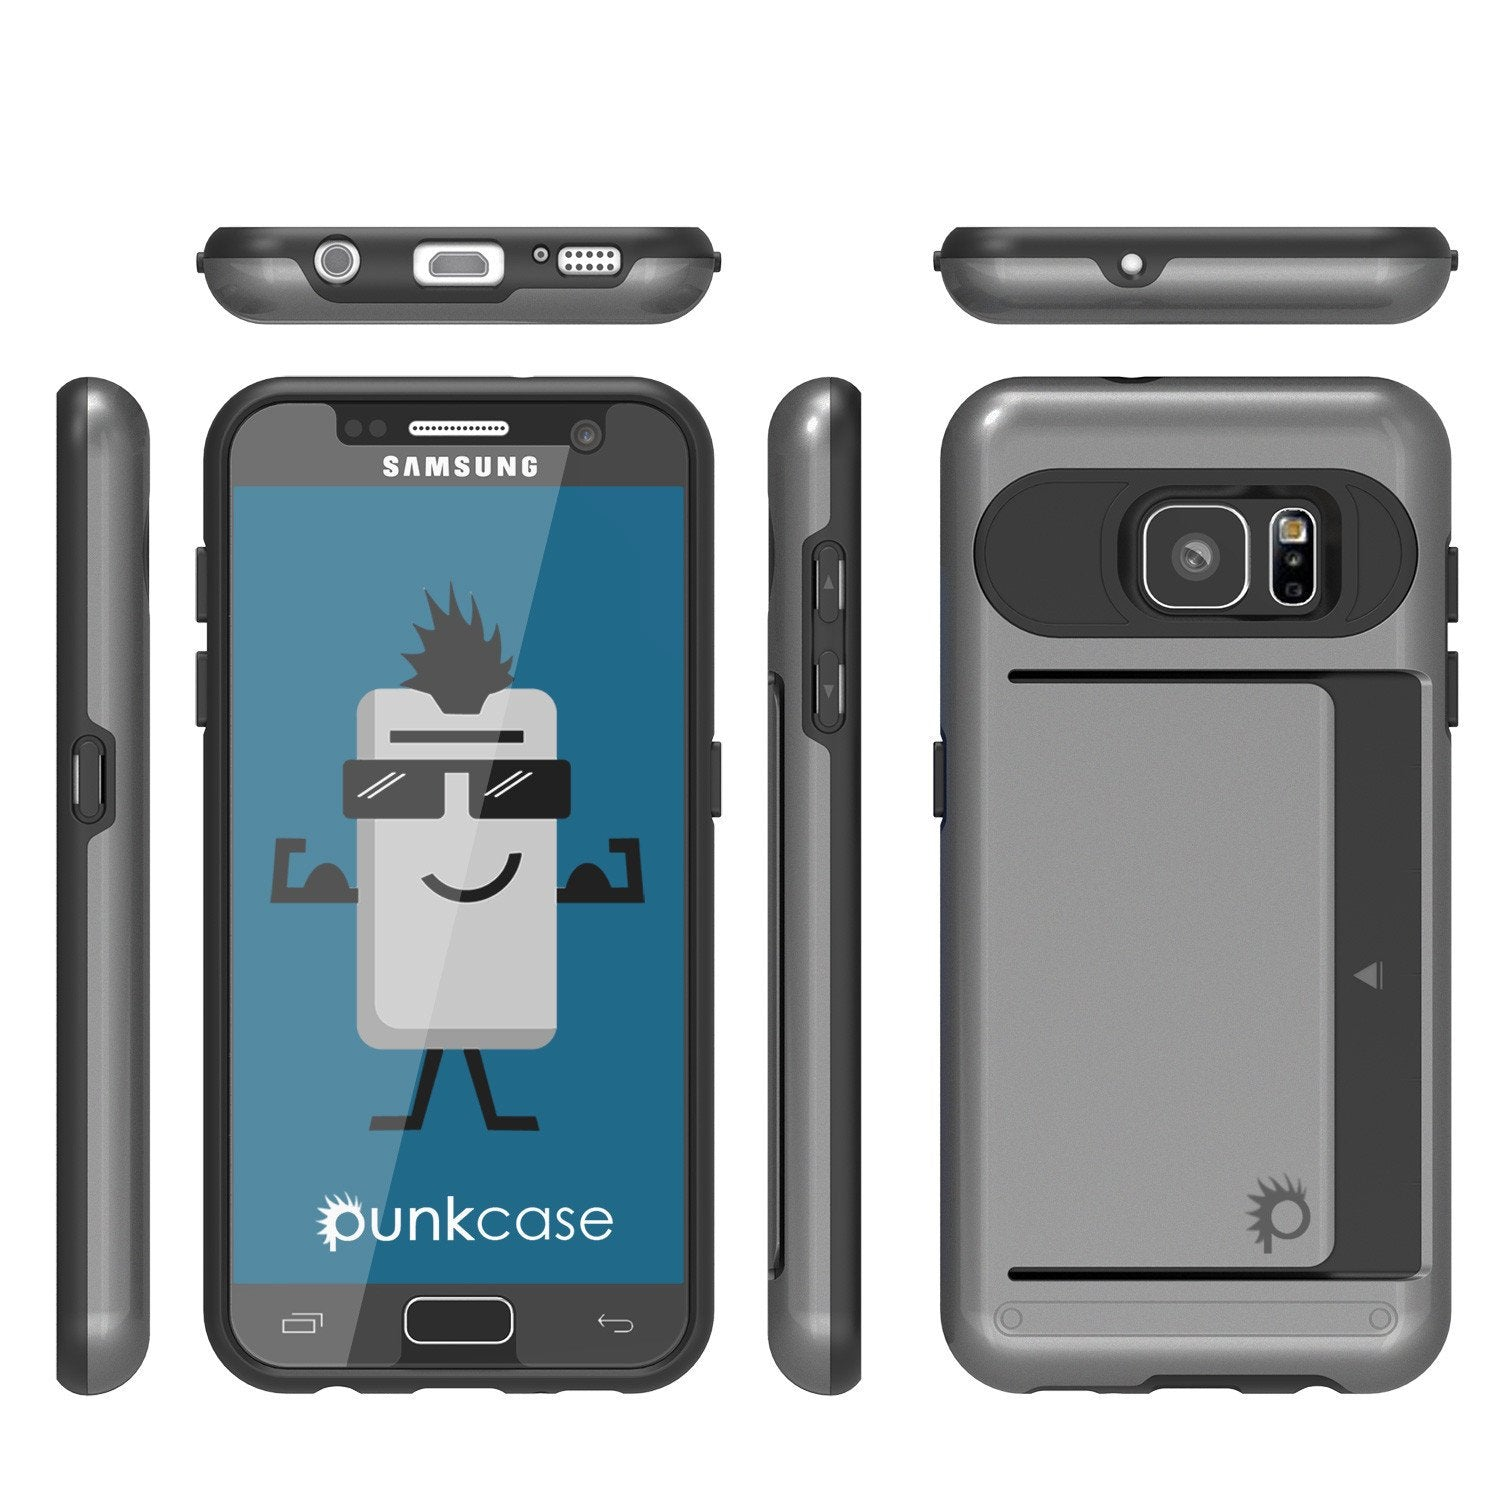 Galaxy S7 EDGE Case PunkCase CLUTCH Grey Series Slim Armor Soft Cover Case w/ Screen Protector - PunkCase NZ